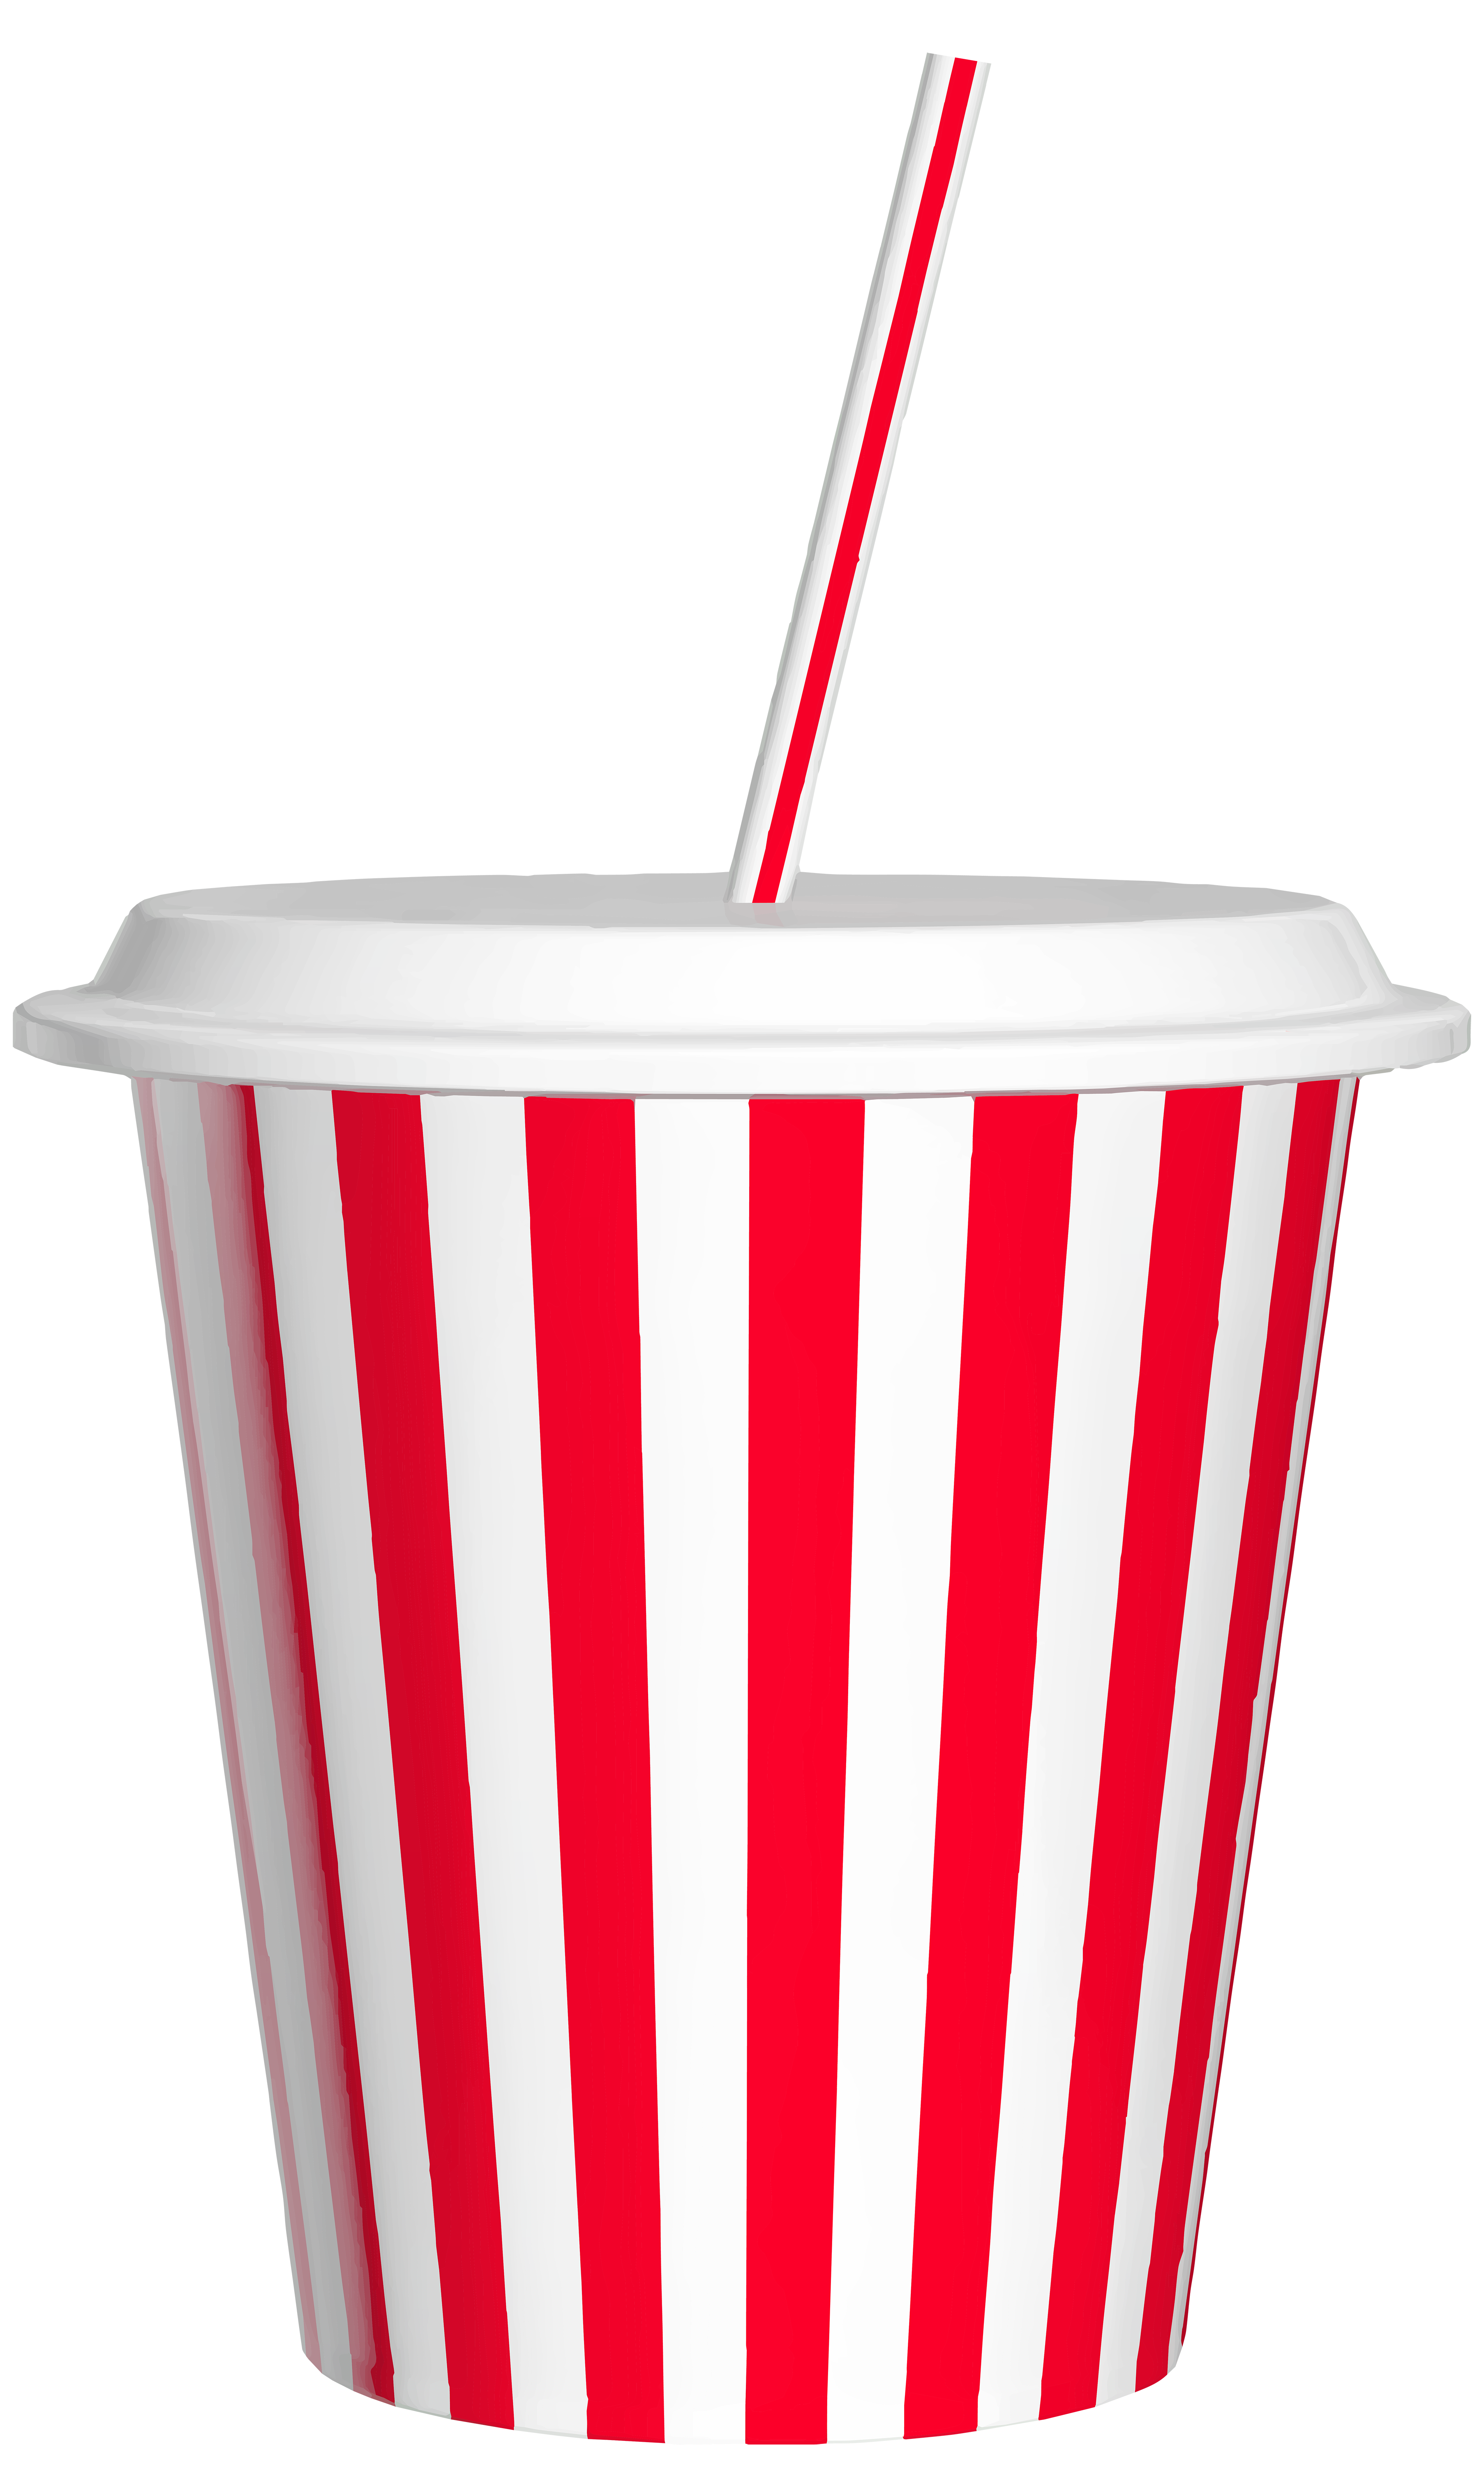 Cups clipart plastics. Drink cup with straw